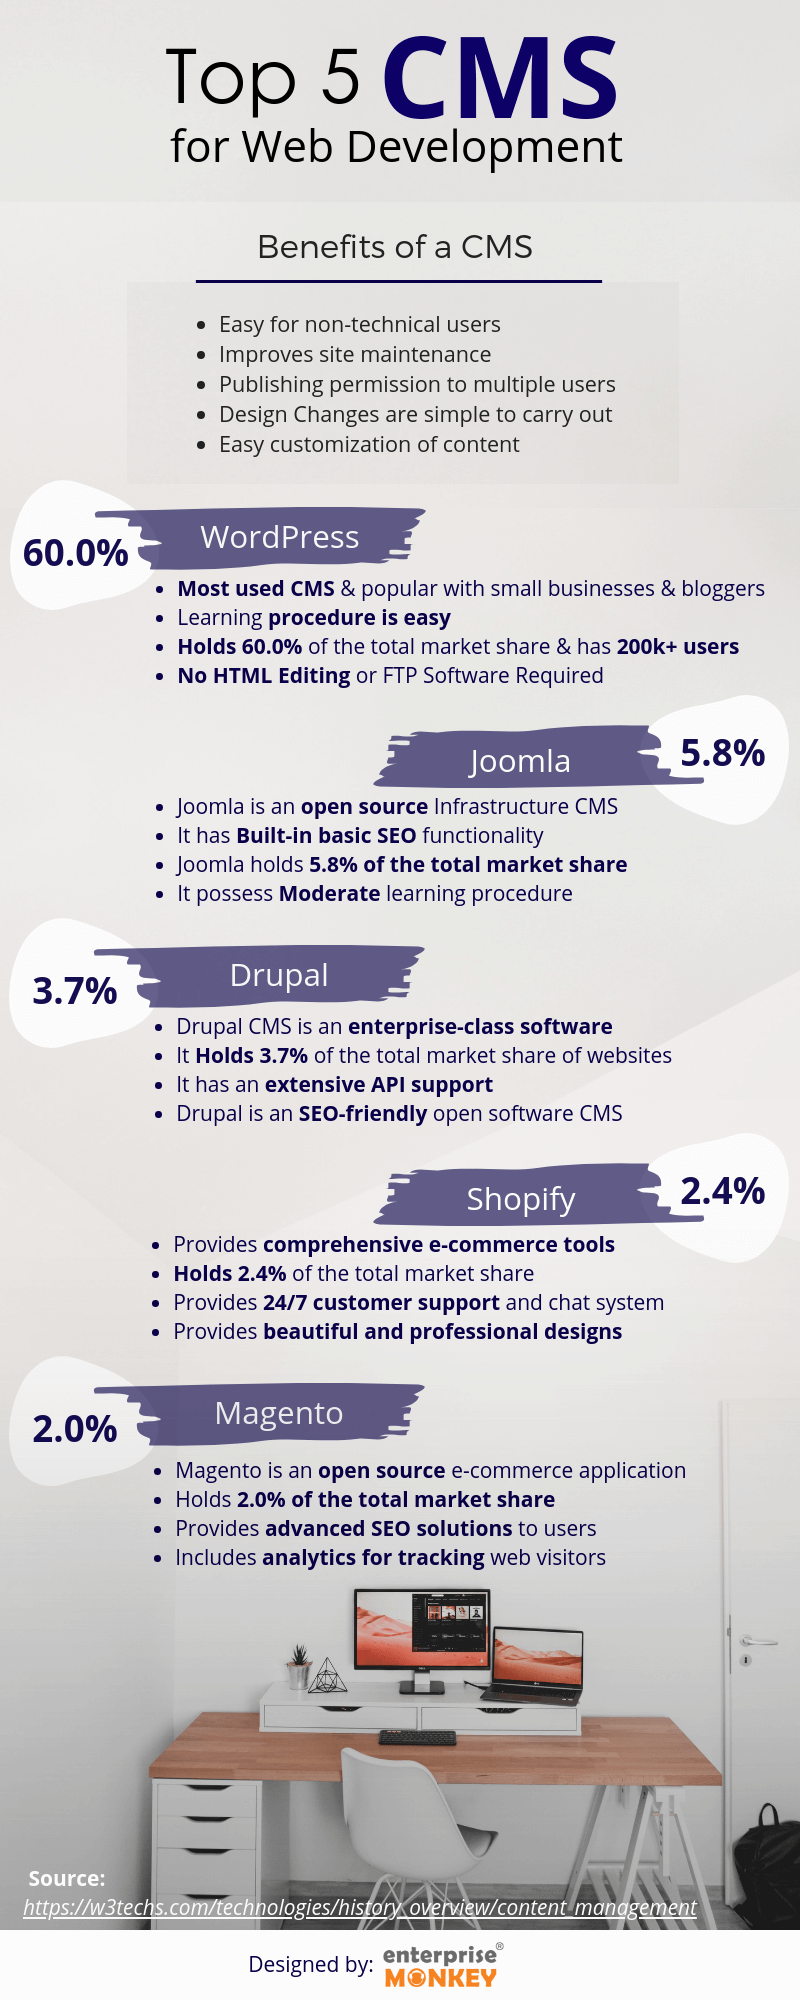 Top 5 CMS for web development infographic